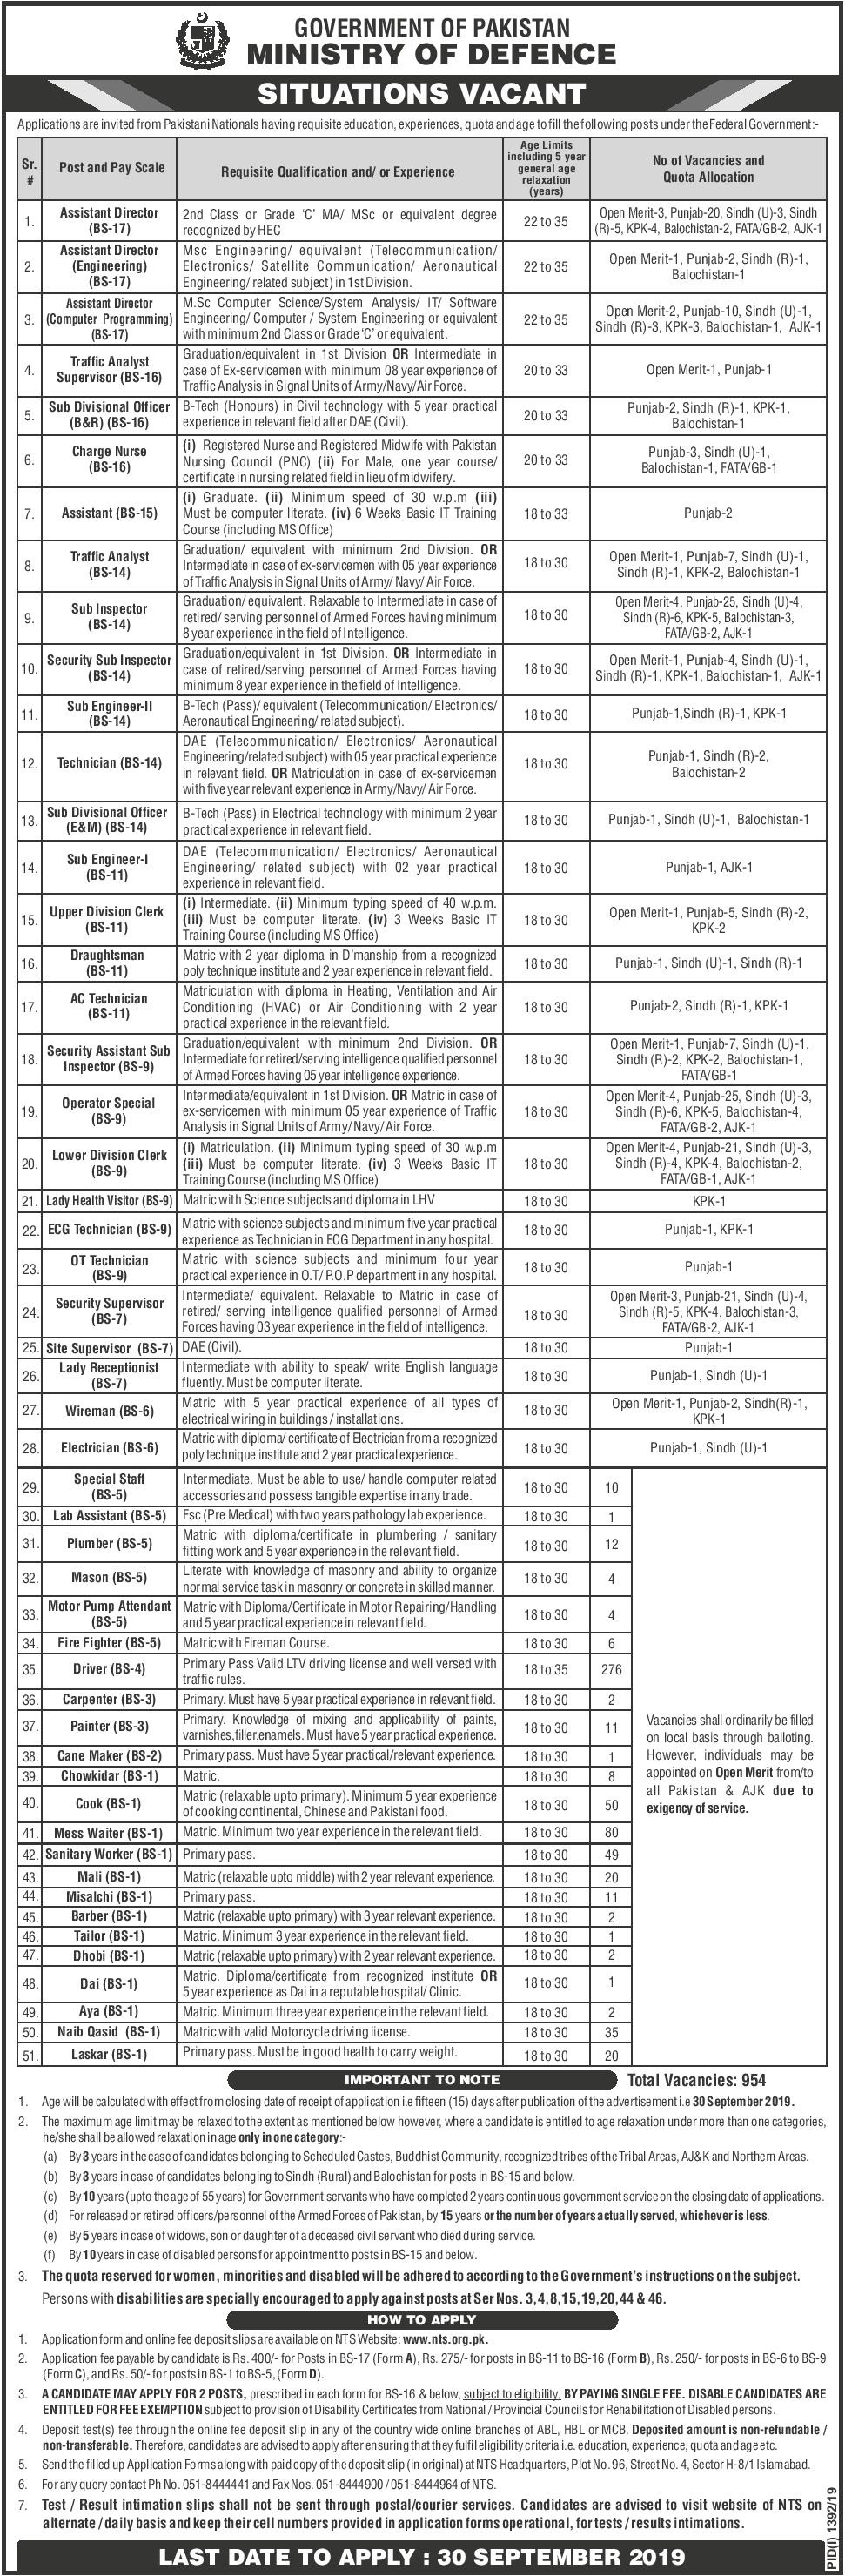 Ministry of Defence Government of Pakistan MOD Jobs Via NTS